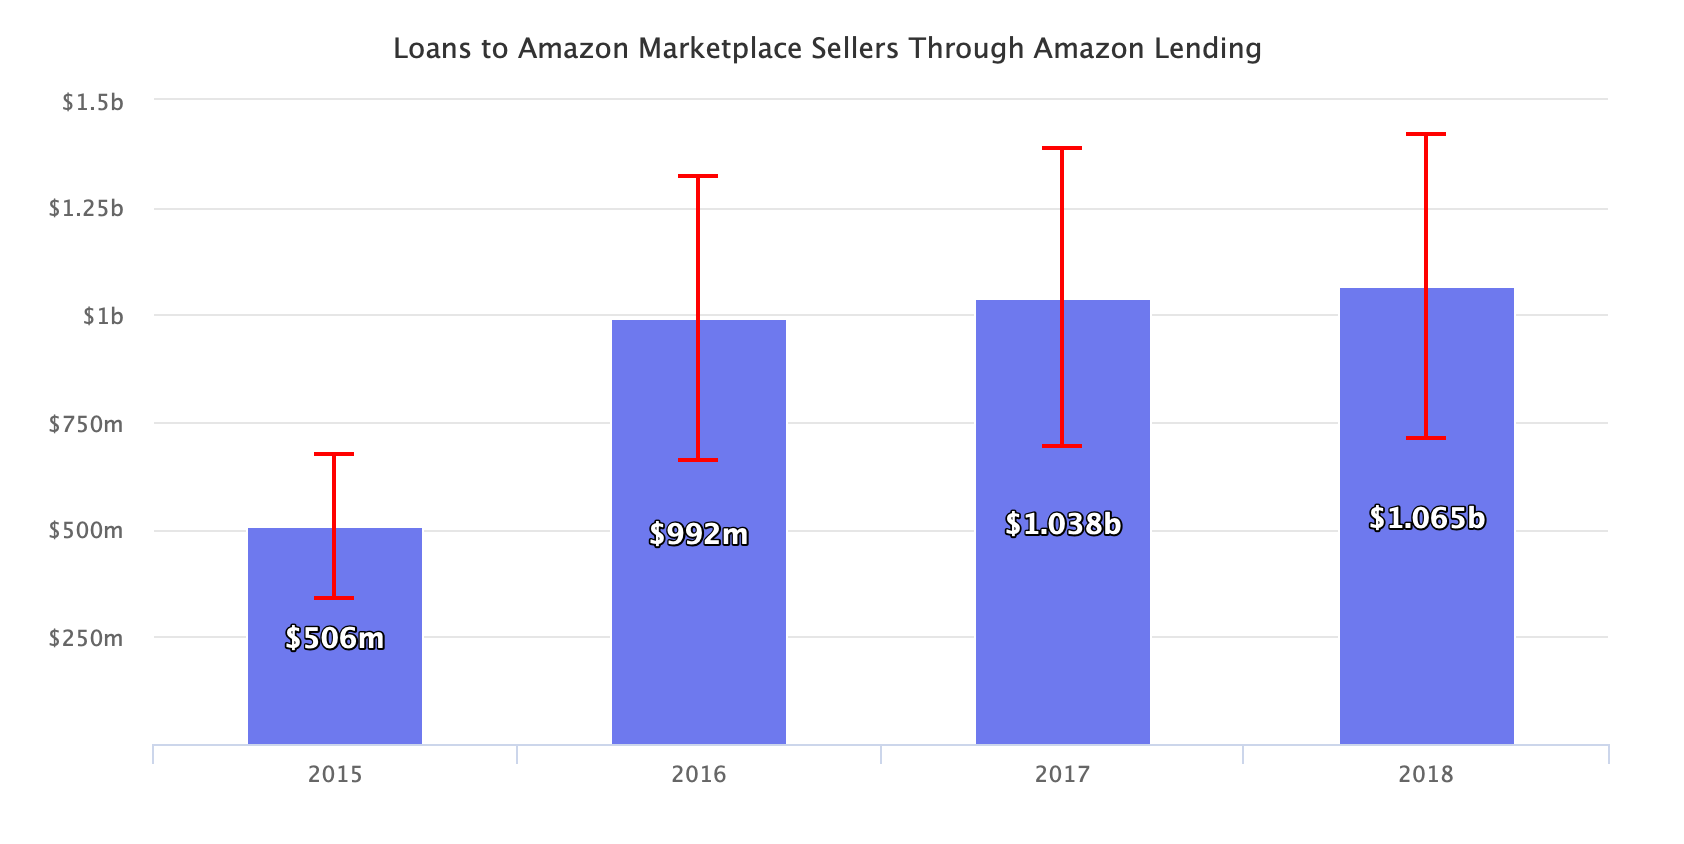 Loans to Amazon Marketplace Sellers Through Amazon Lending